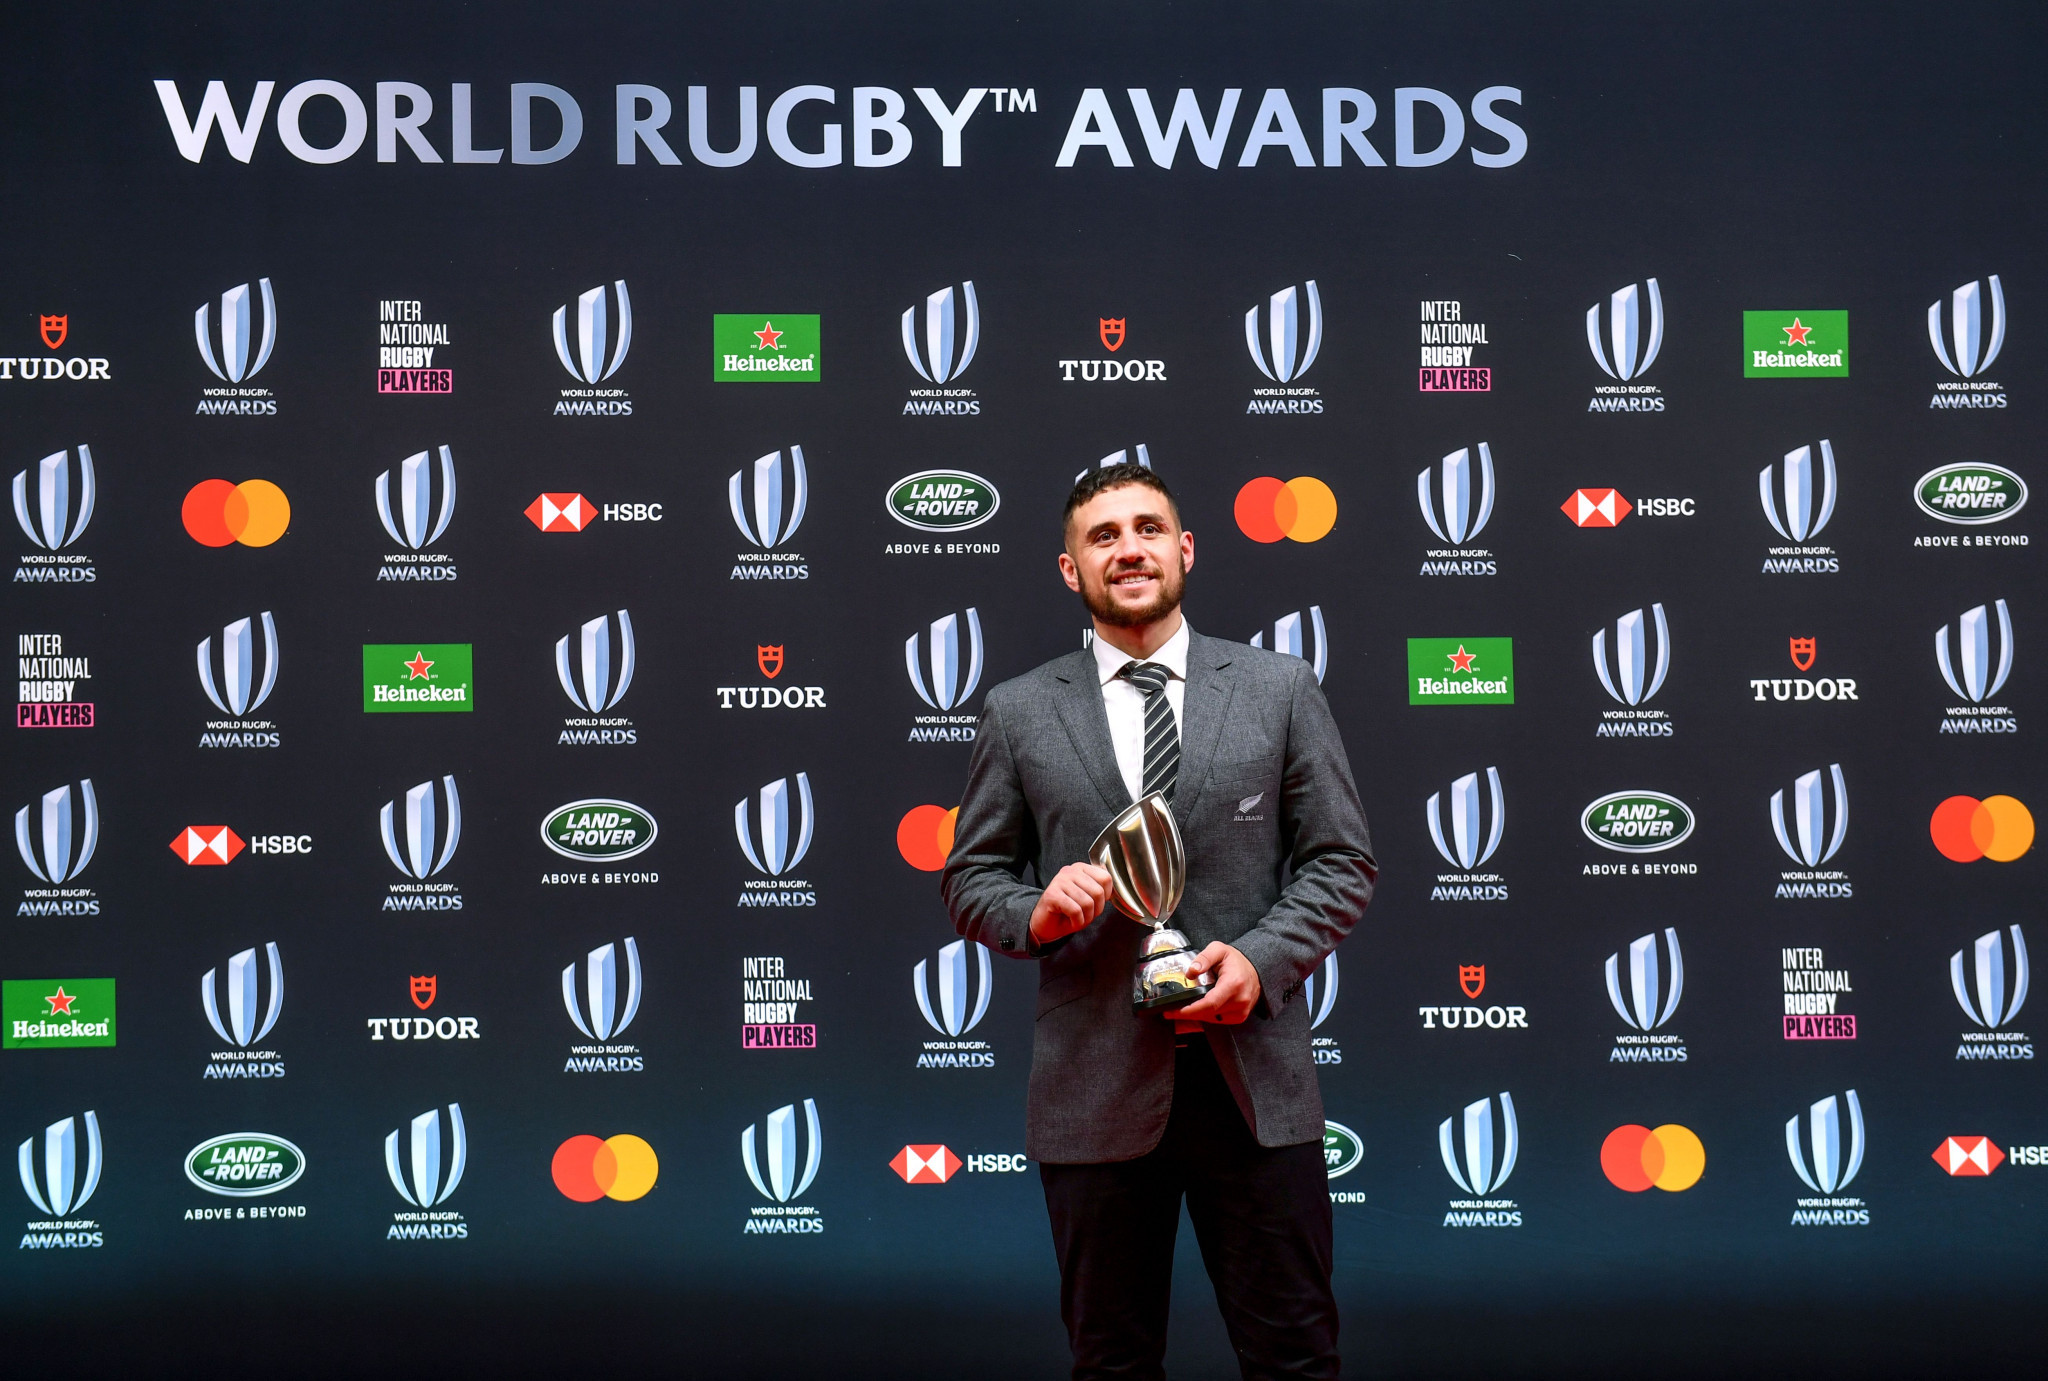 World Rugby Awards to recognise players who provided support during pandemic